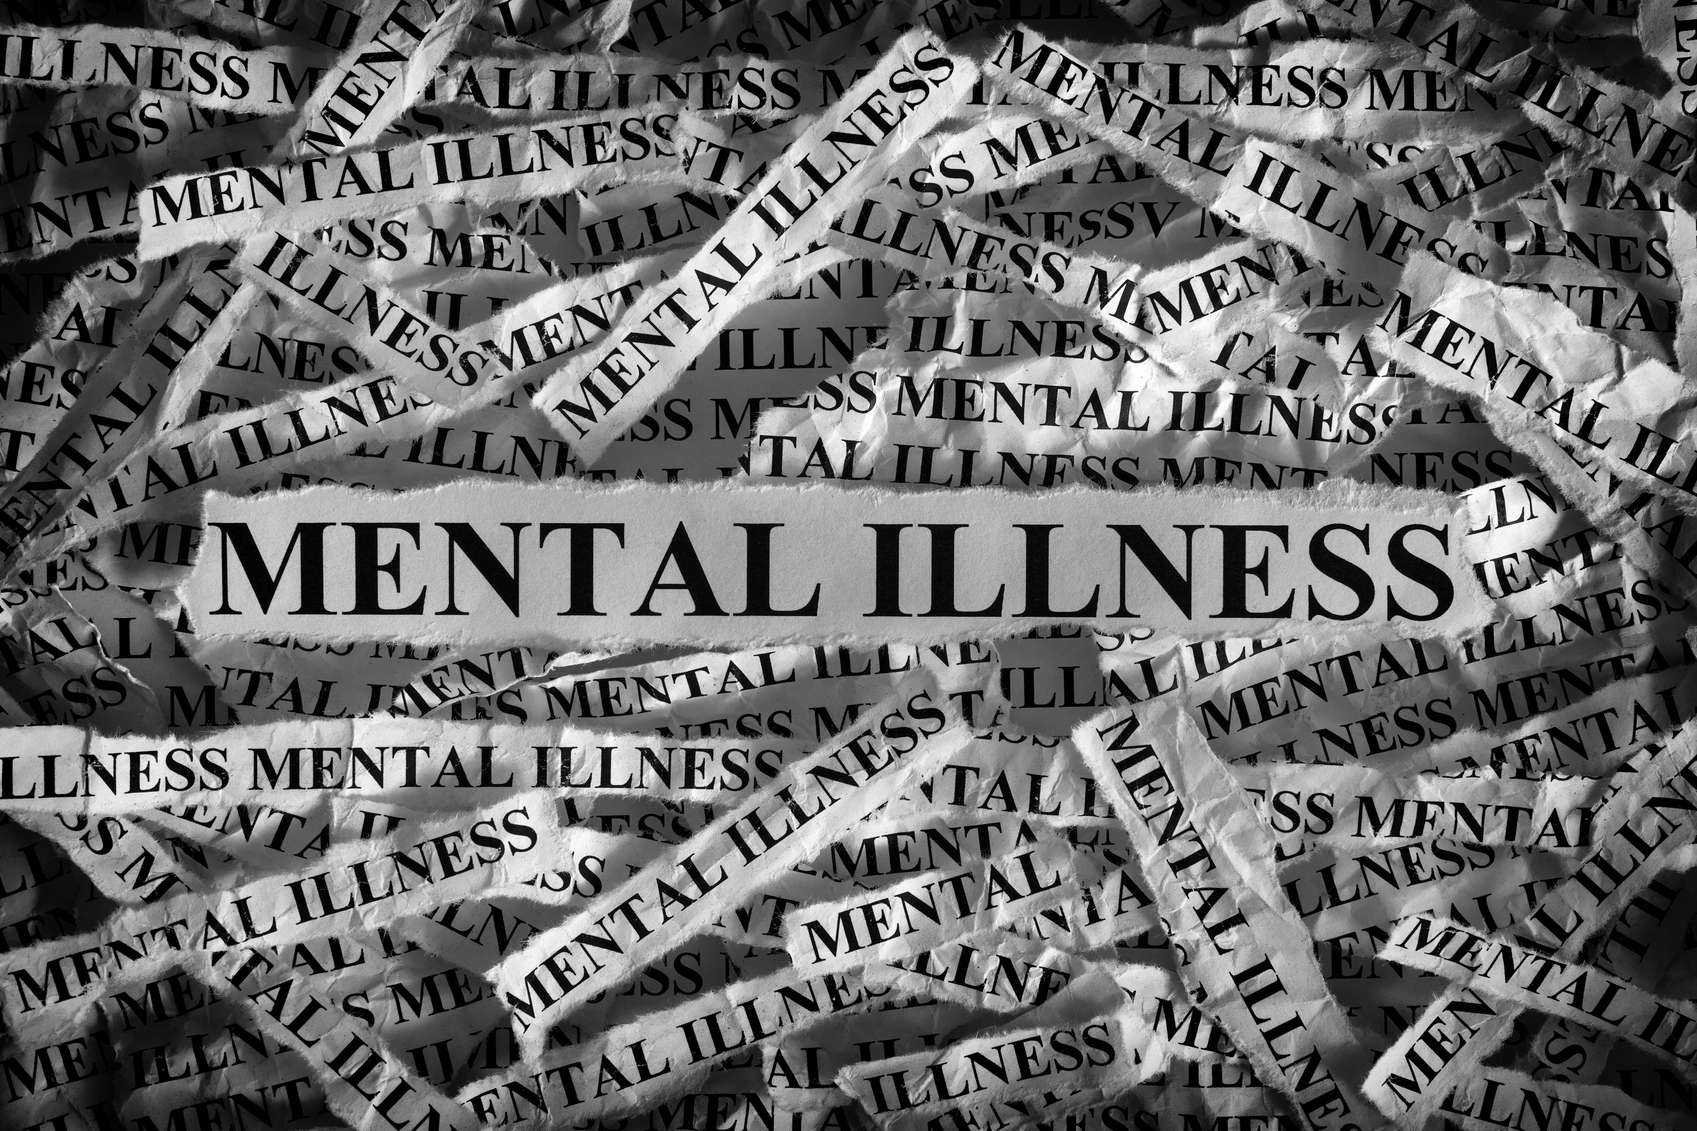 History of Mental Illness Facts